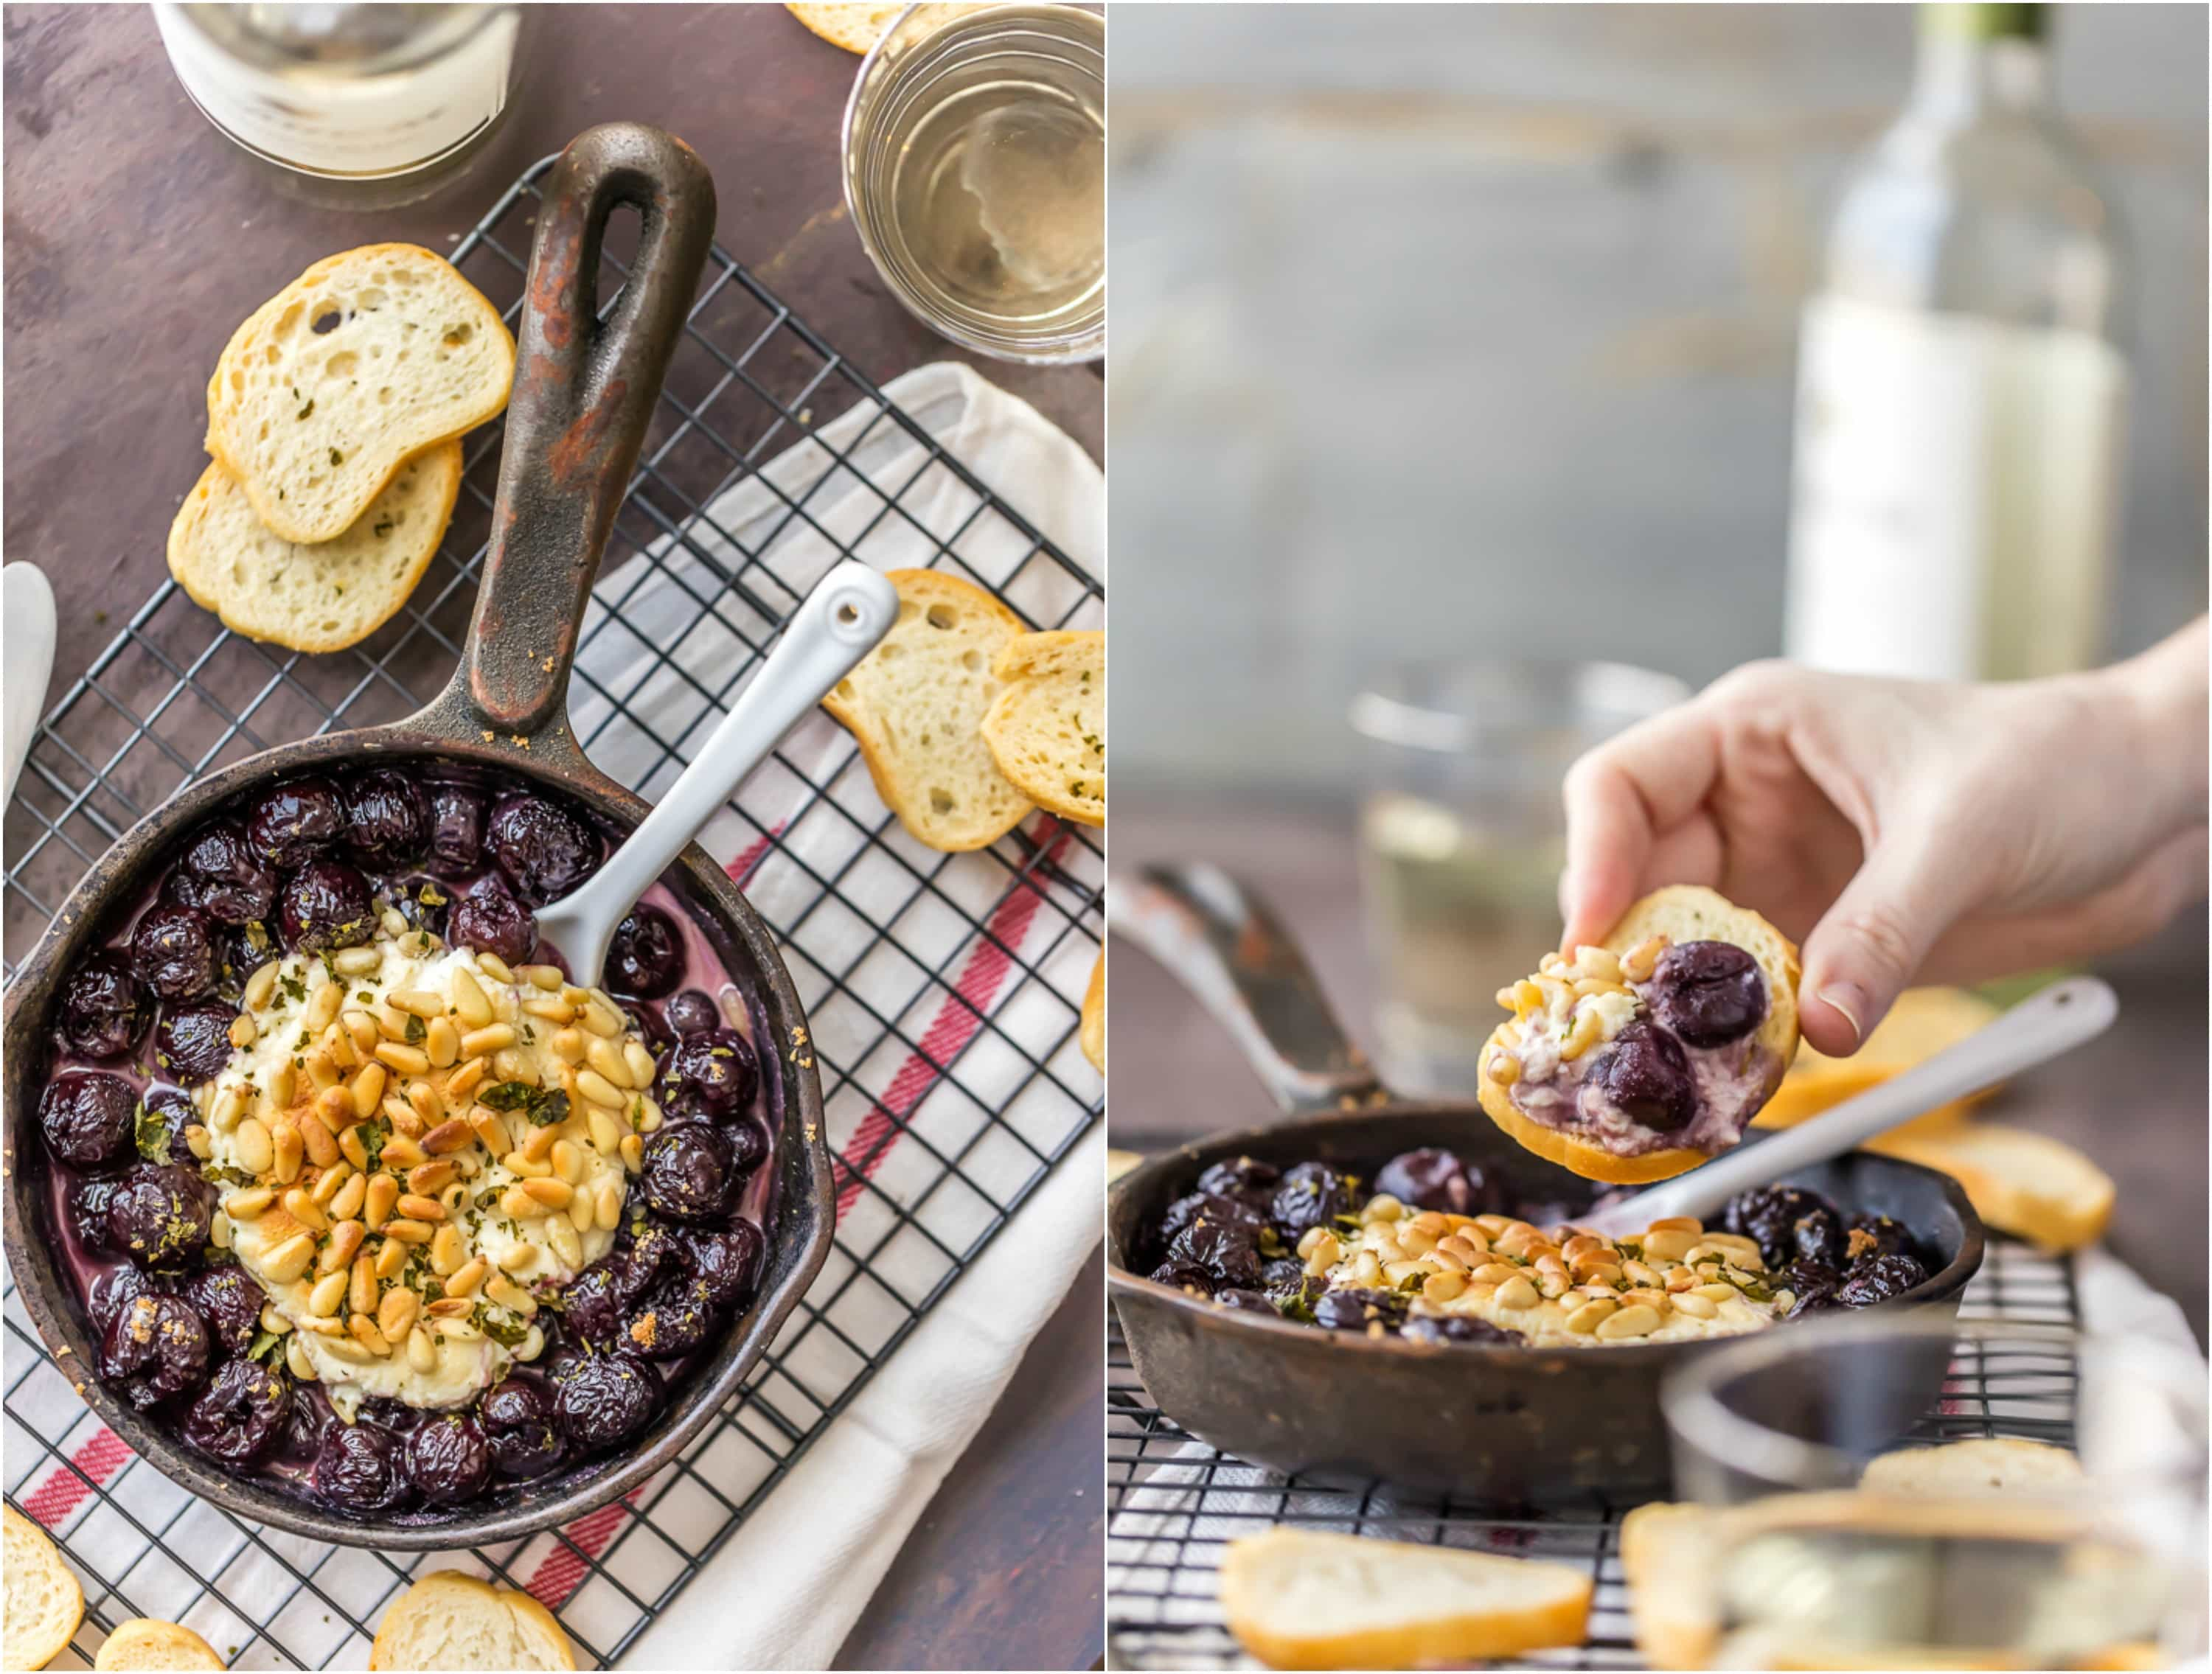 Hot Cherry Pie Goat Cheese Dip is an easy recipe perfect for entertaining! Beautiful and easy dip recipe made with goat cheese, cream cheese, cherry pie filling, pine nuts, and basil. All baked in a skillet. YUM!